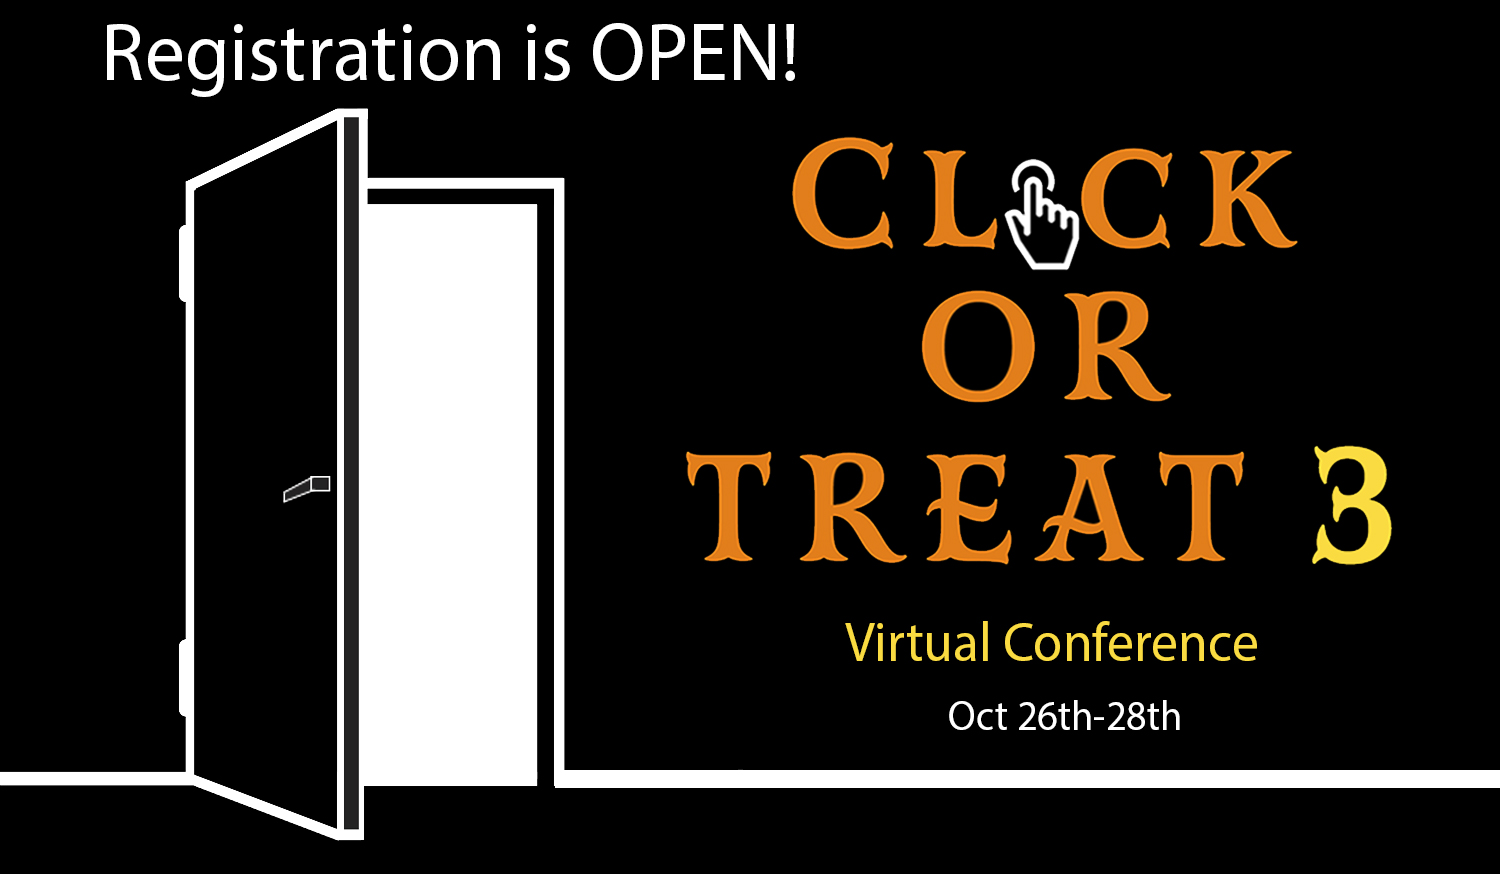 Click or Treat online Conference Registration is open